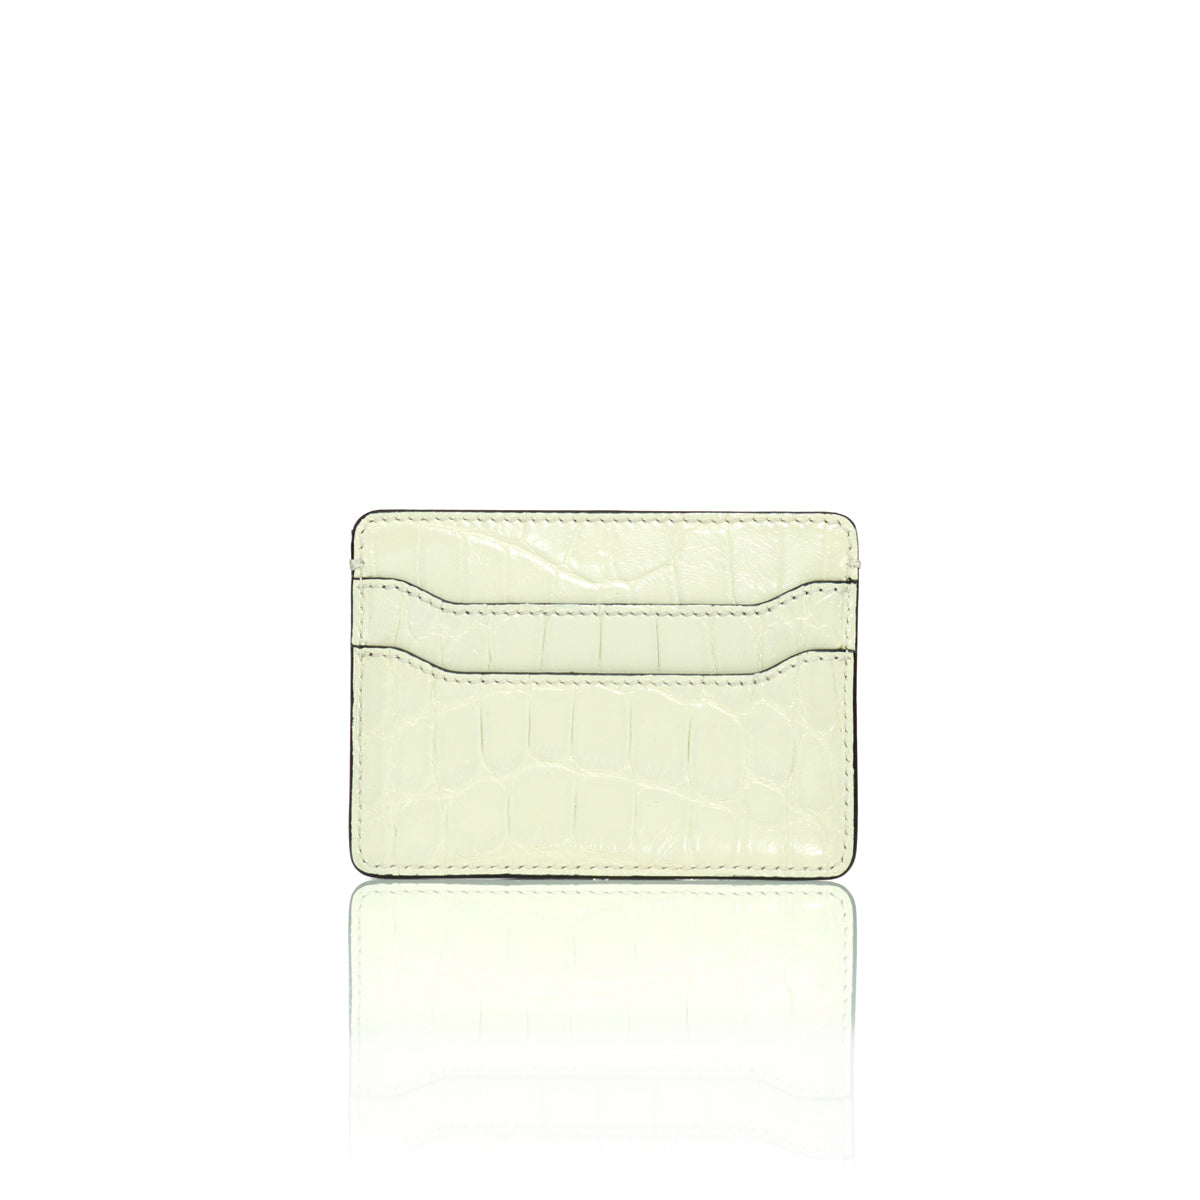 Credit Card Case - White Alligator